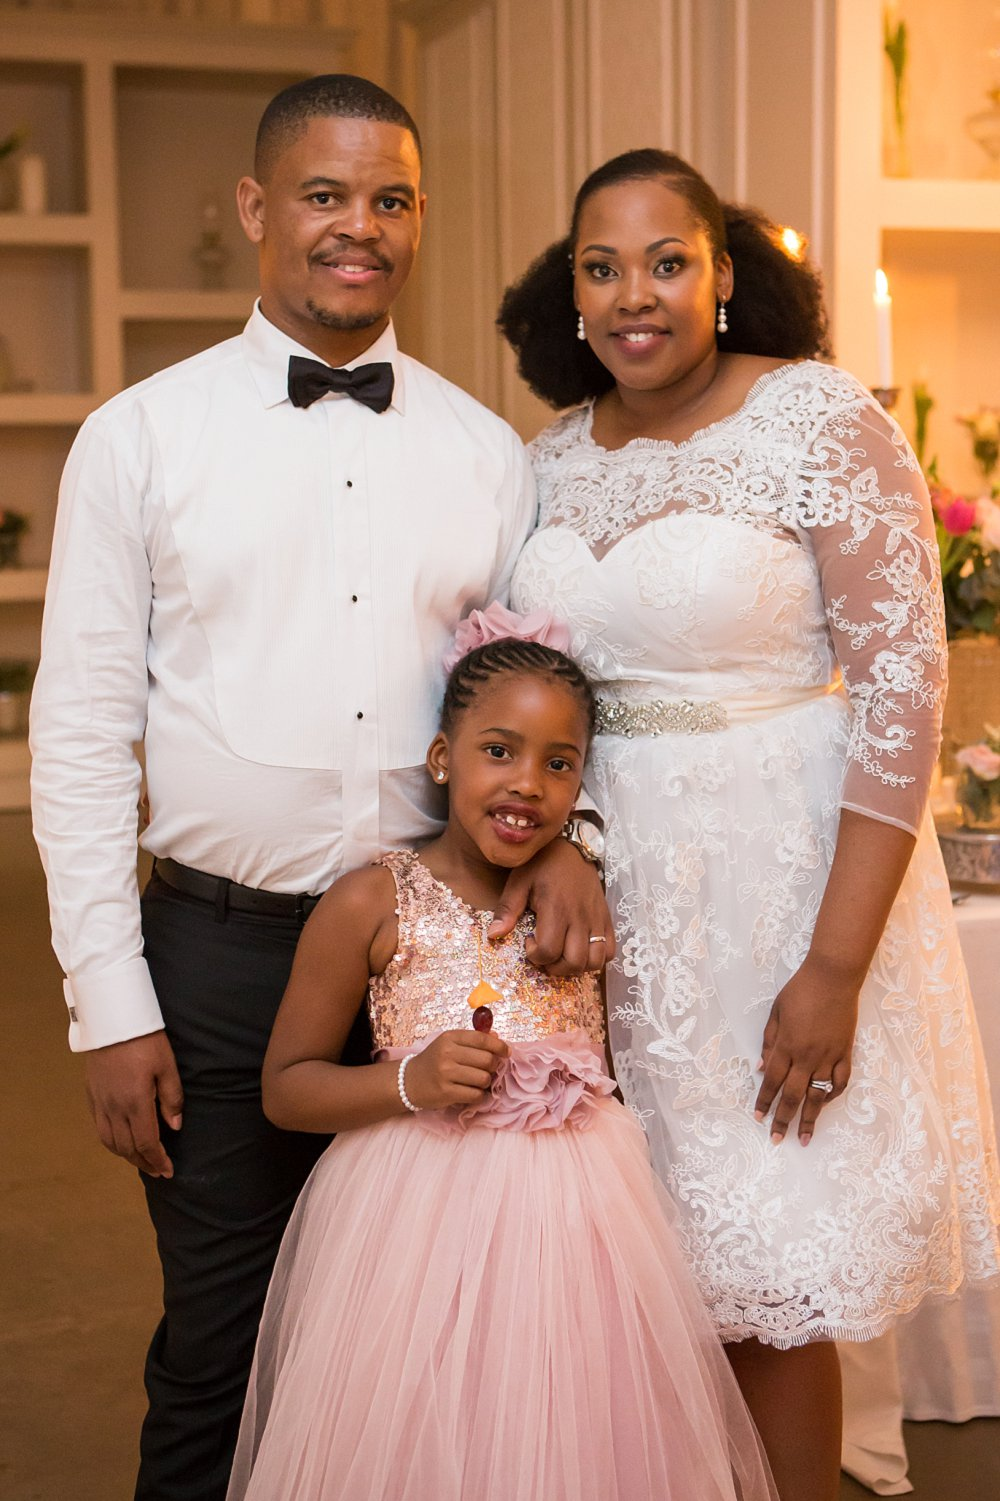 Eensgezind Durbanville Wedding Expressions Photography 163